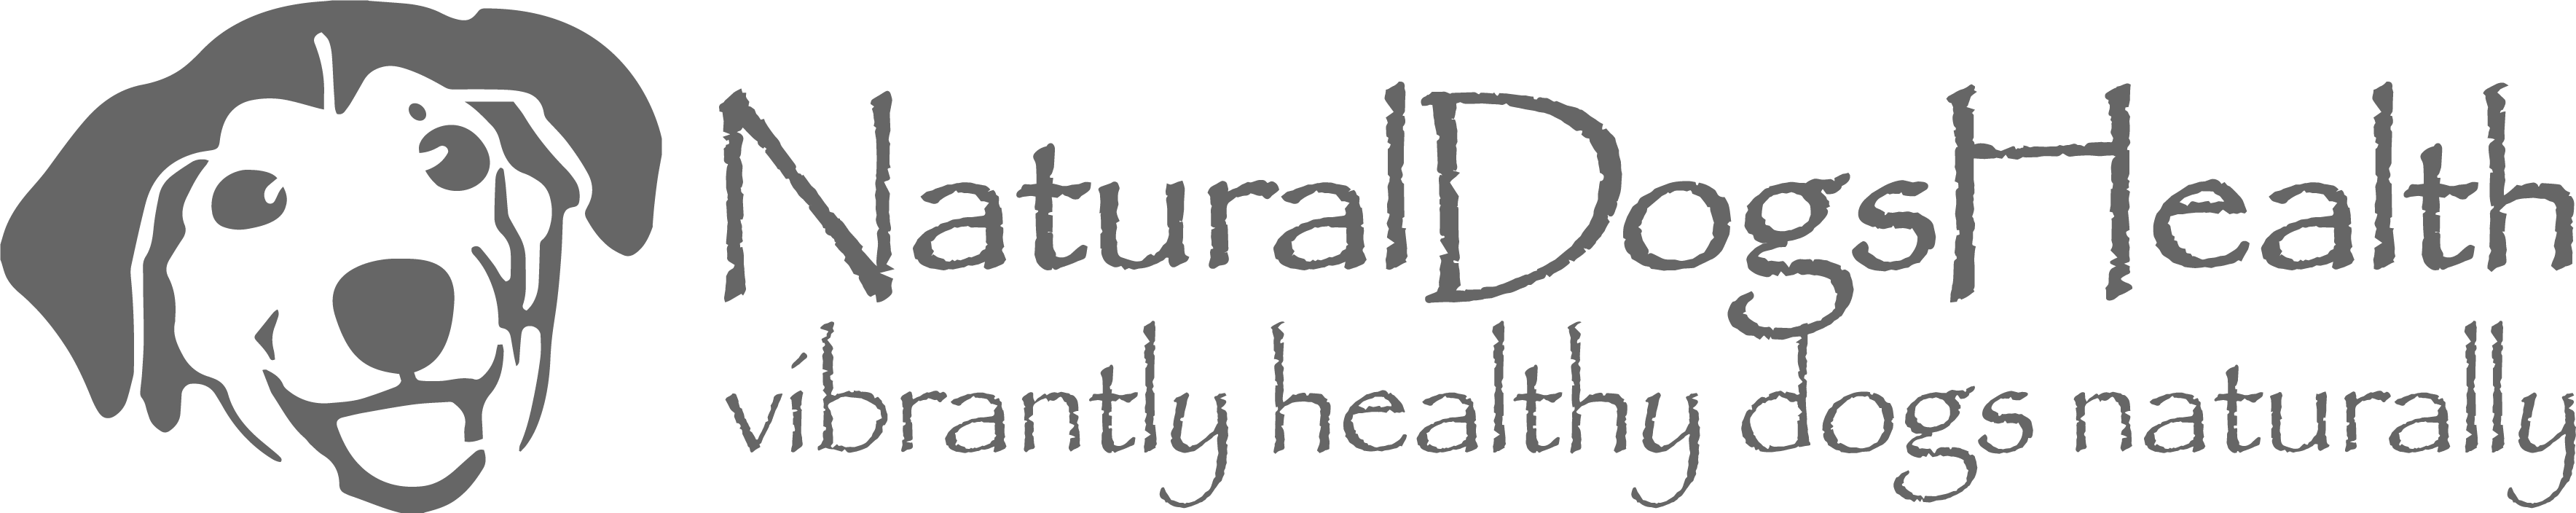 Natural Dogs Health